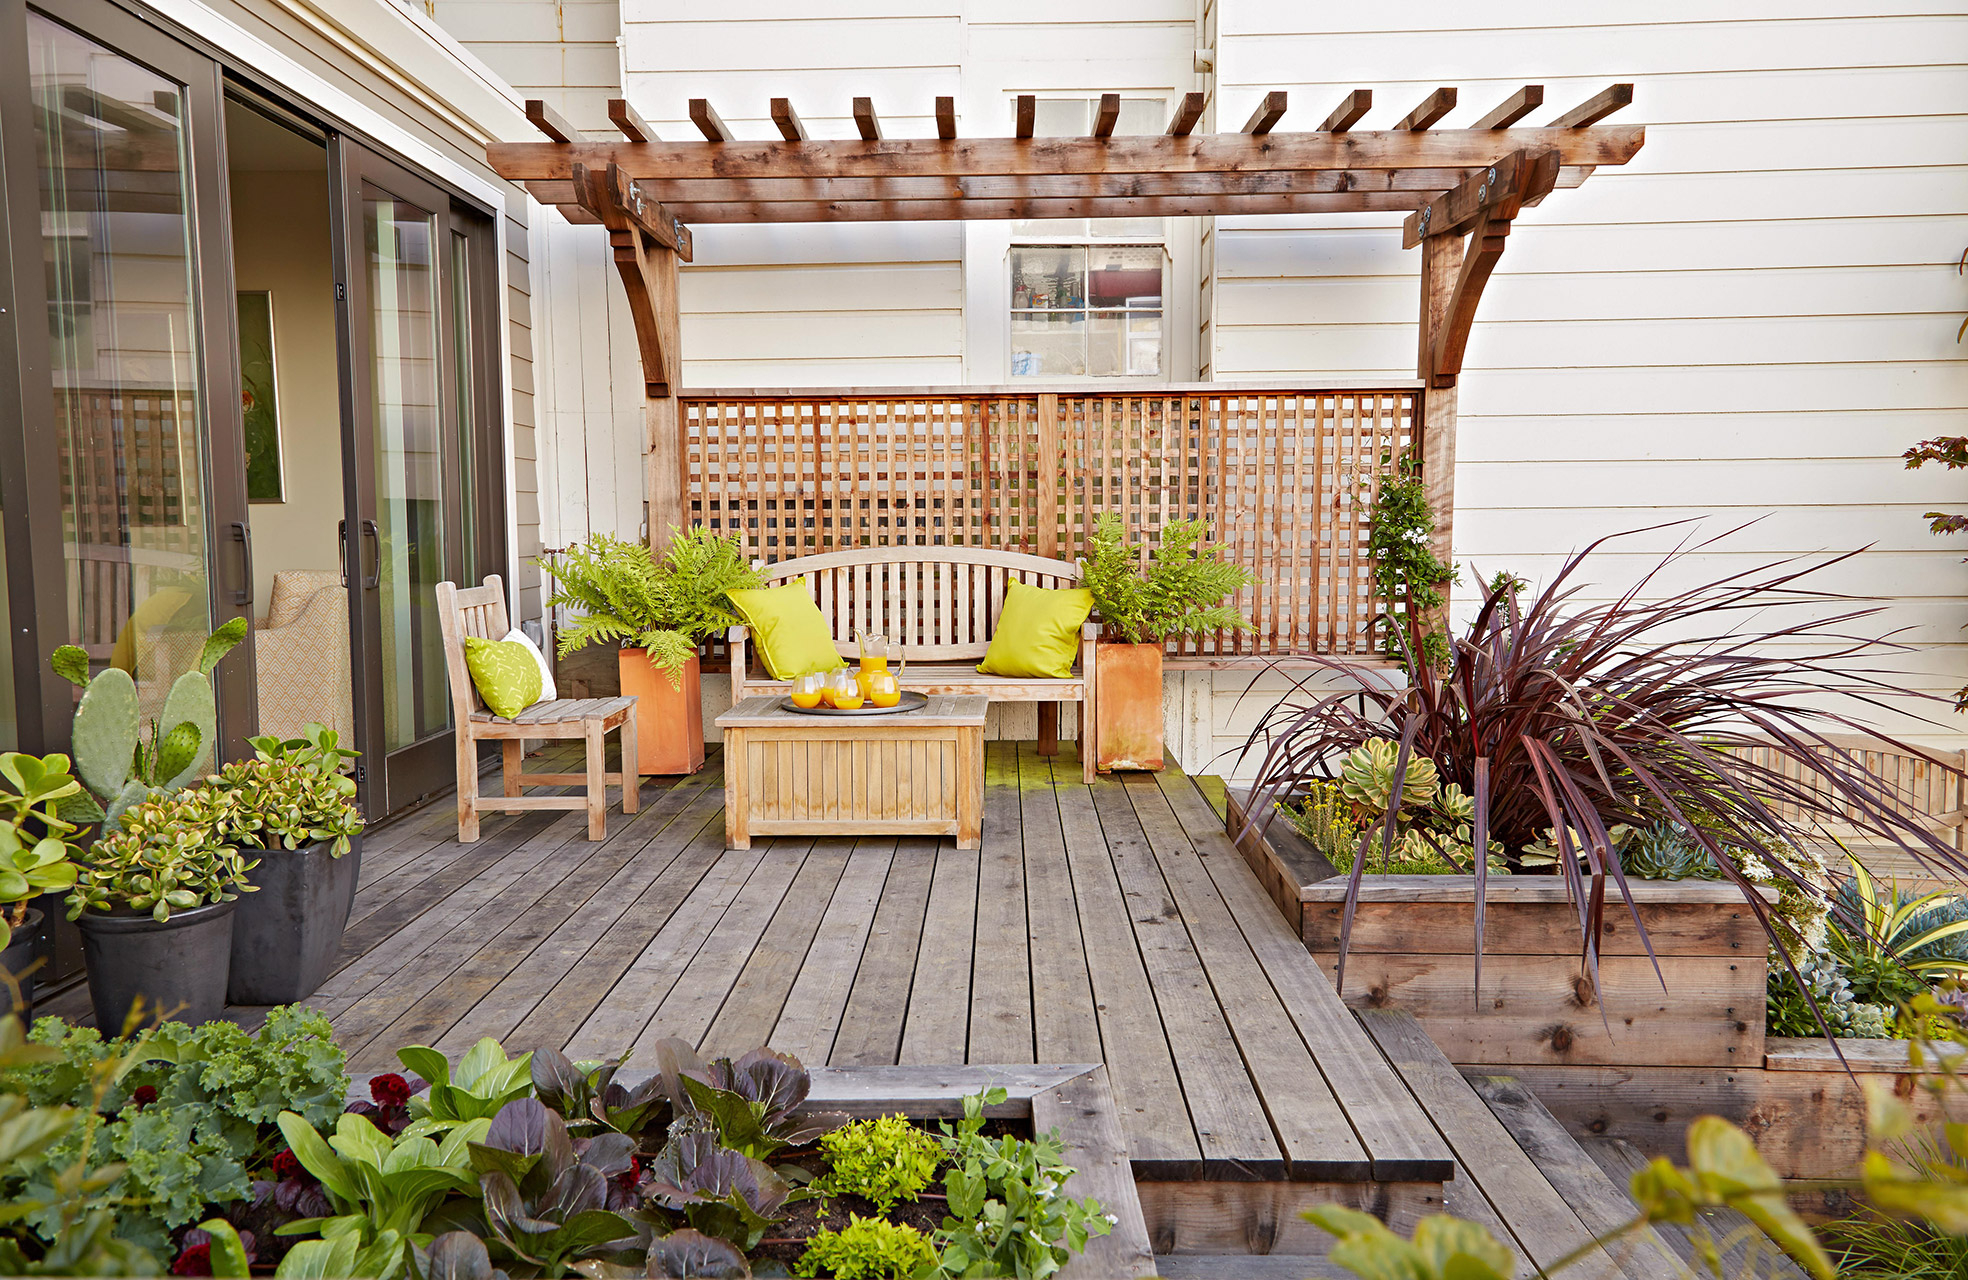 16 Simple Solutions For Small Space Landscapes regarding 14 Awesome Designs of How to Craft Landscaping Ideas For Small Backyard